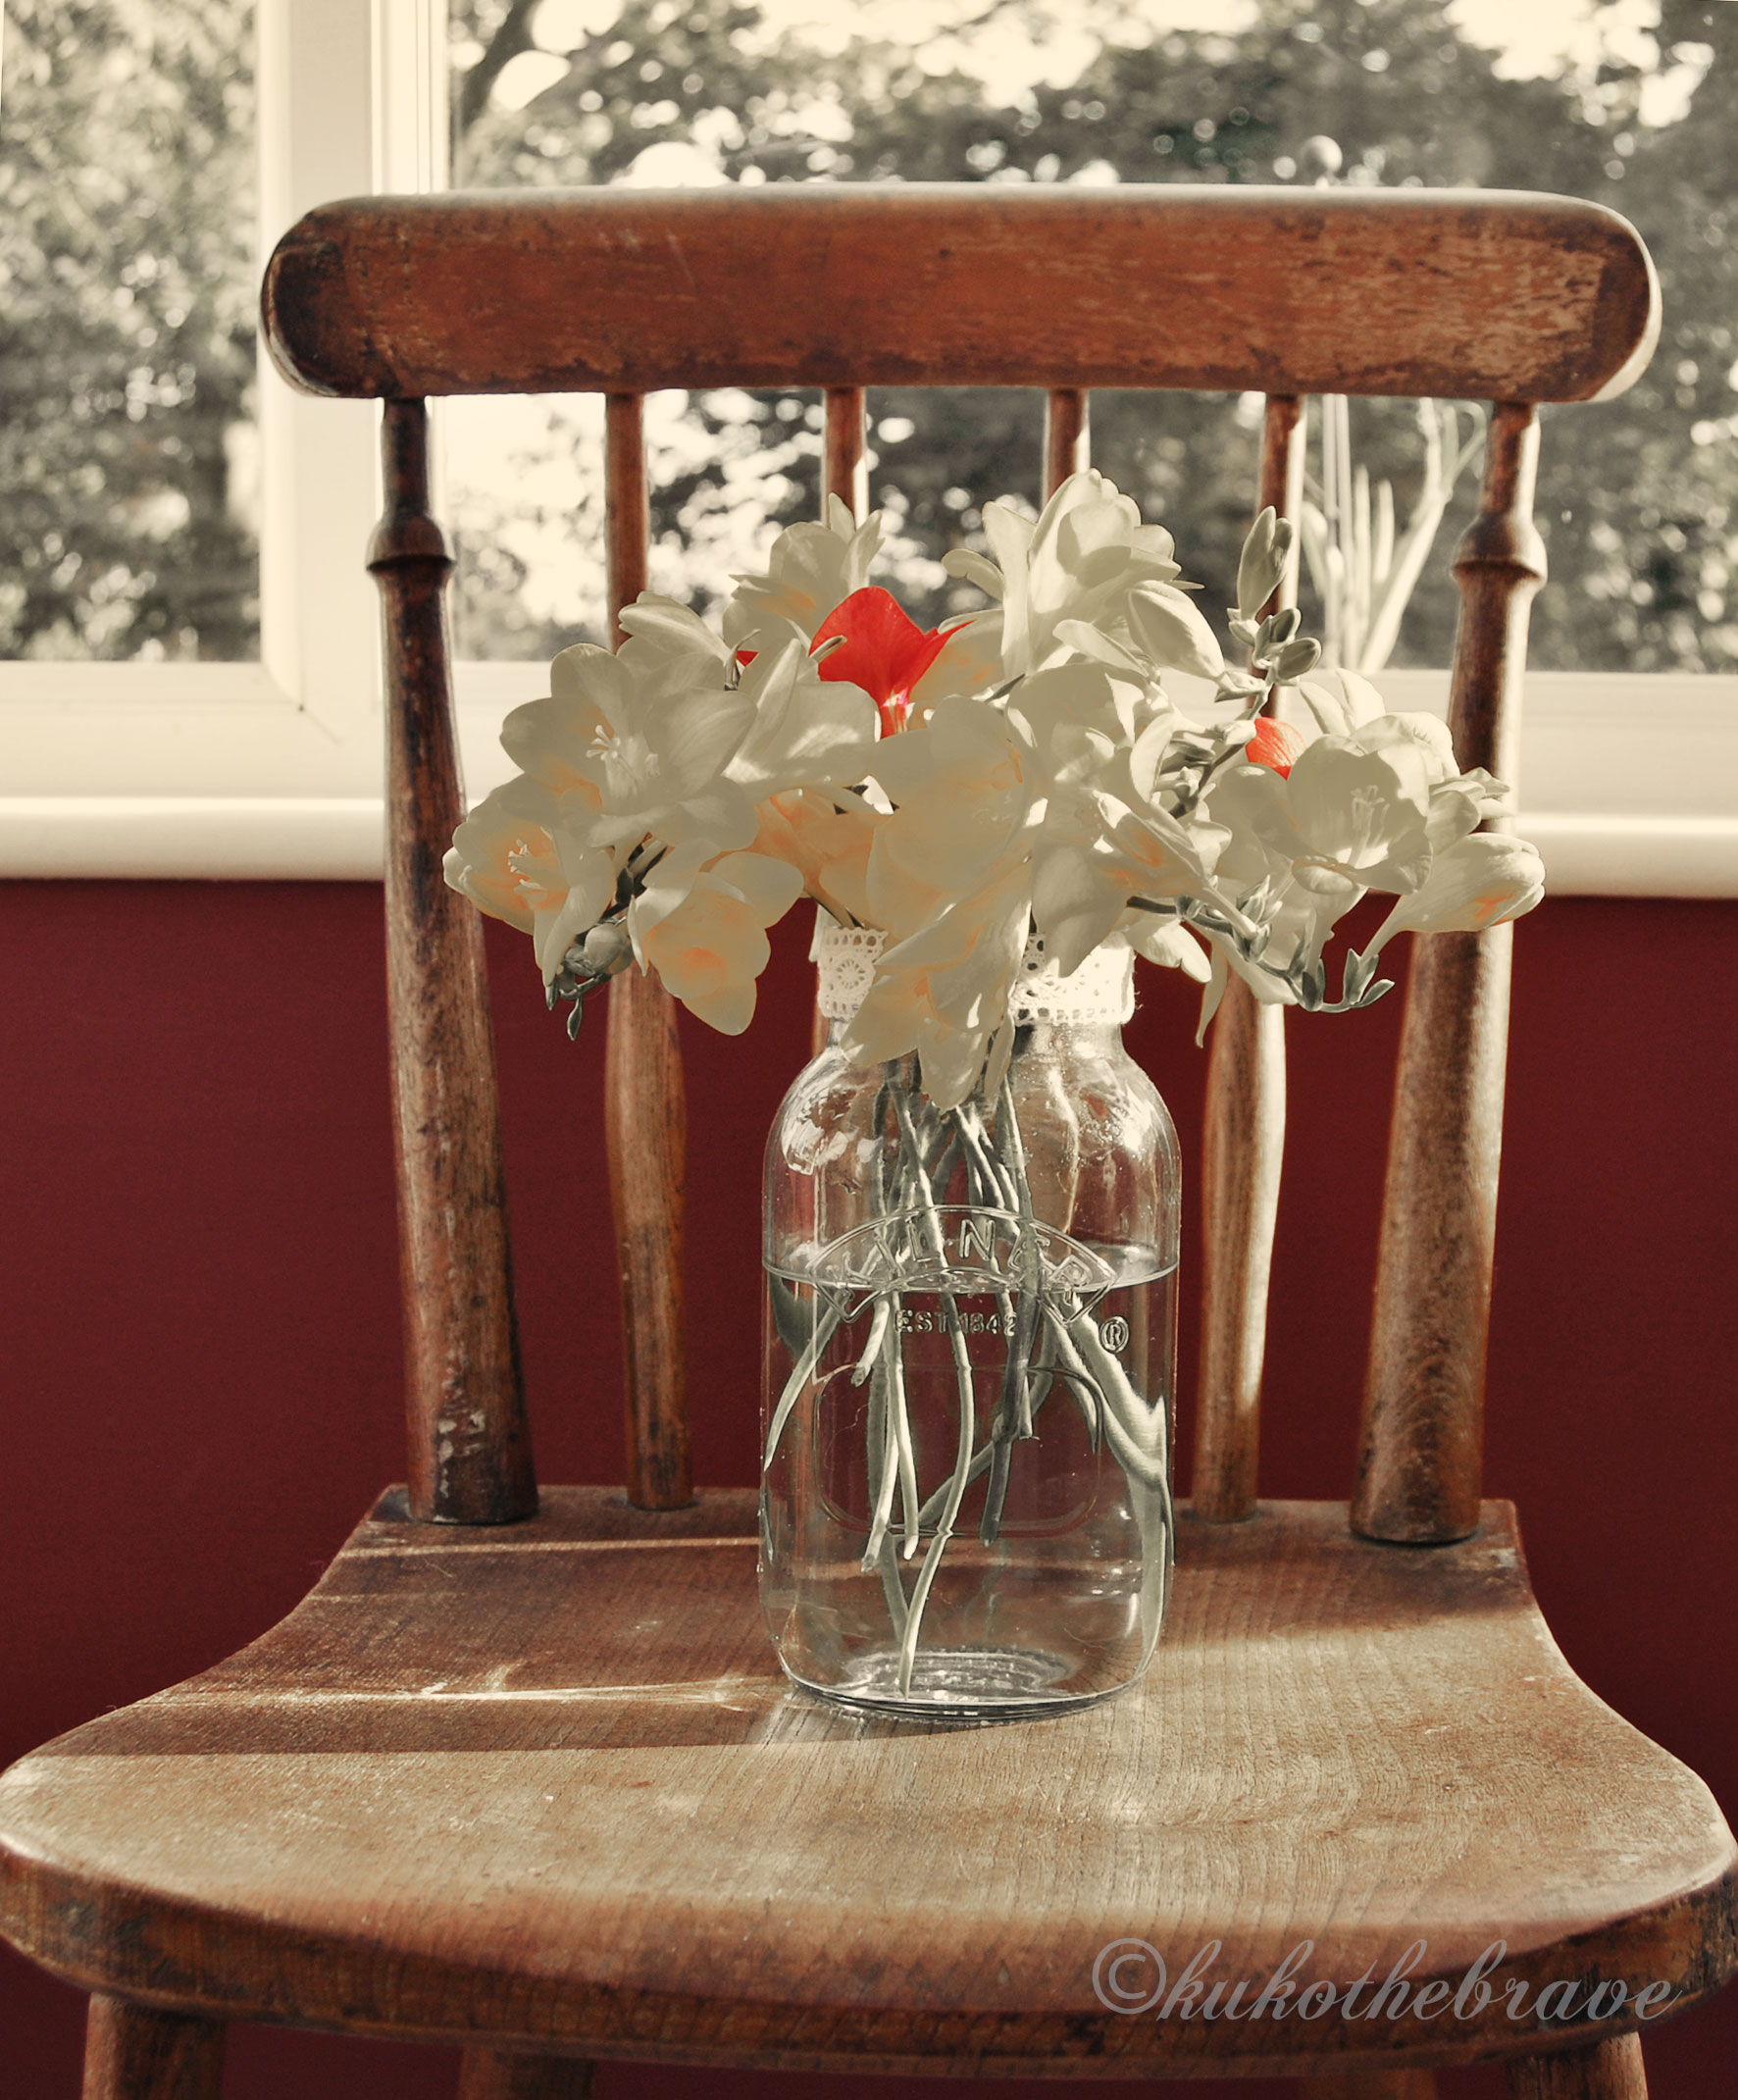 Vintage Chair and Freesia's